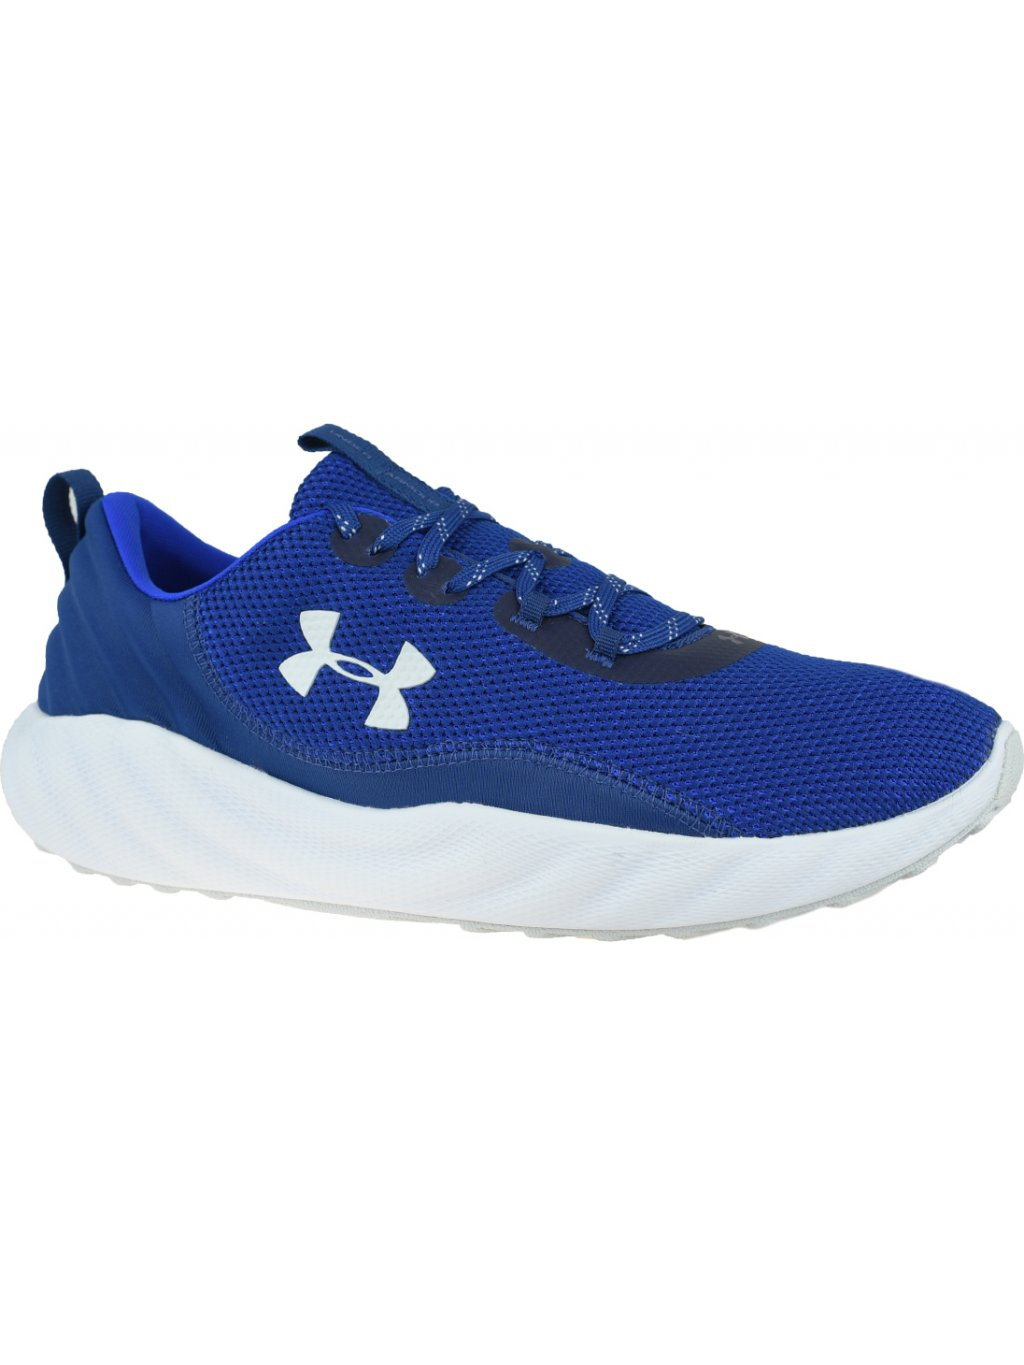 UNDER ARMOUR CHARGED WILL NM